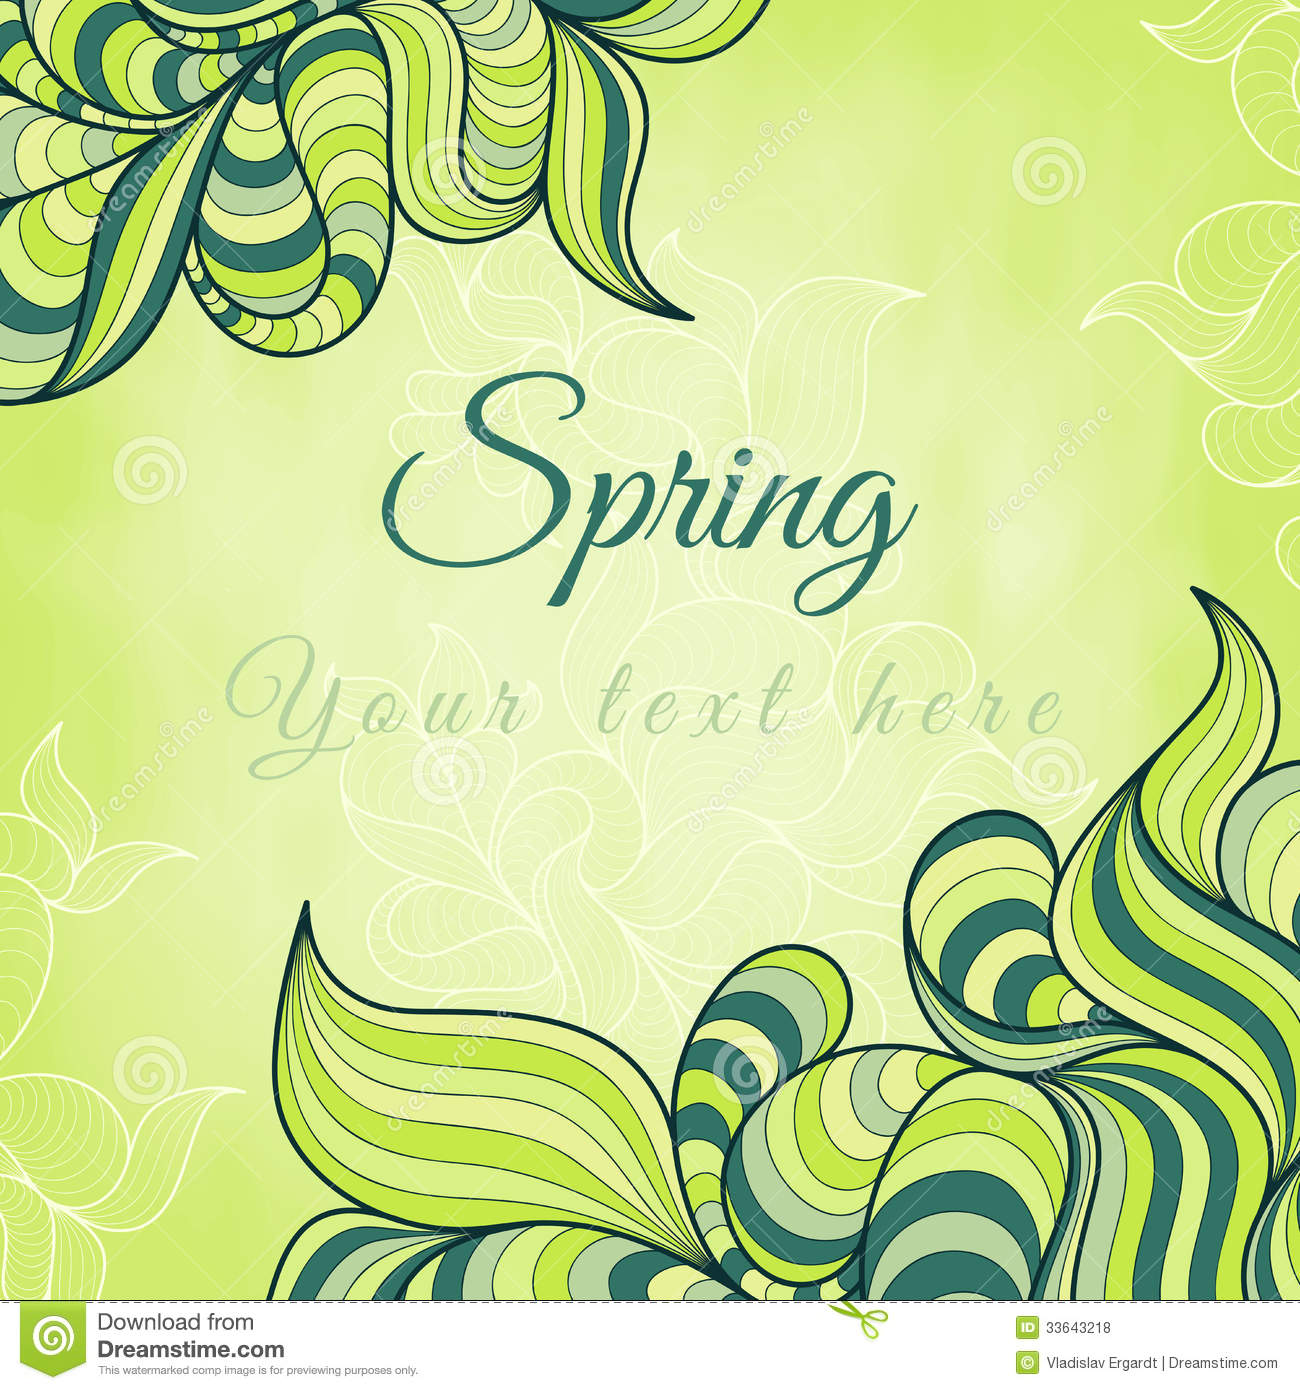 Template With Abstract Wavy Striped Leaves Vector Image – Spring or Summer Theme Invitation Cards